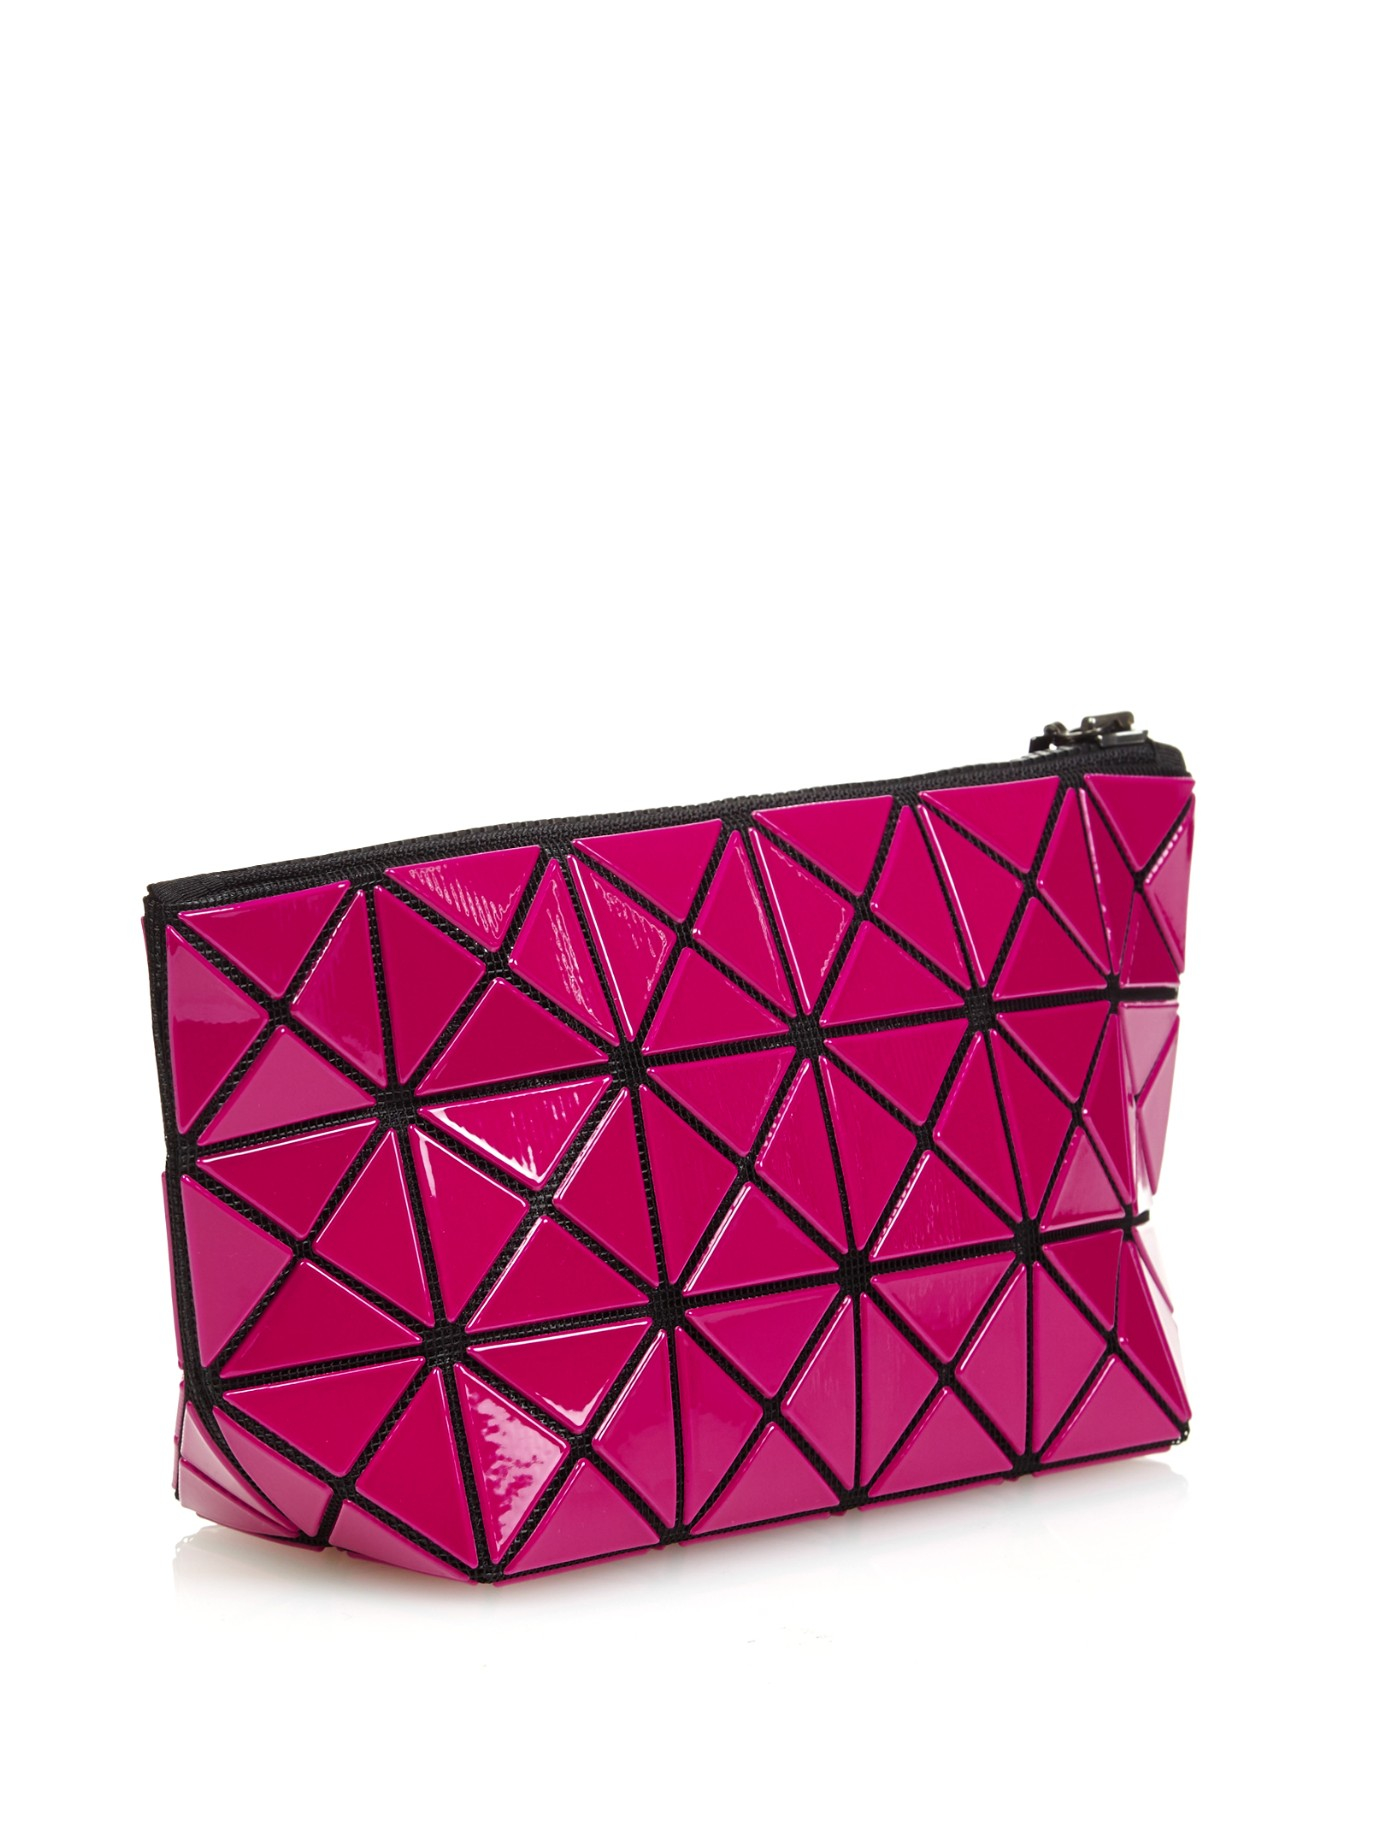 fe21bbc266 Lyst - Bao Bao Issey Miyake Lucent Basic Cosmetics Case in Pink